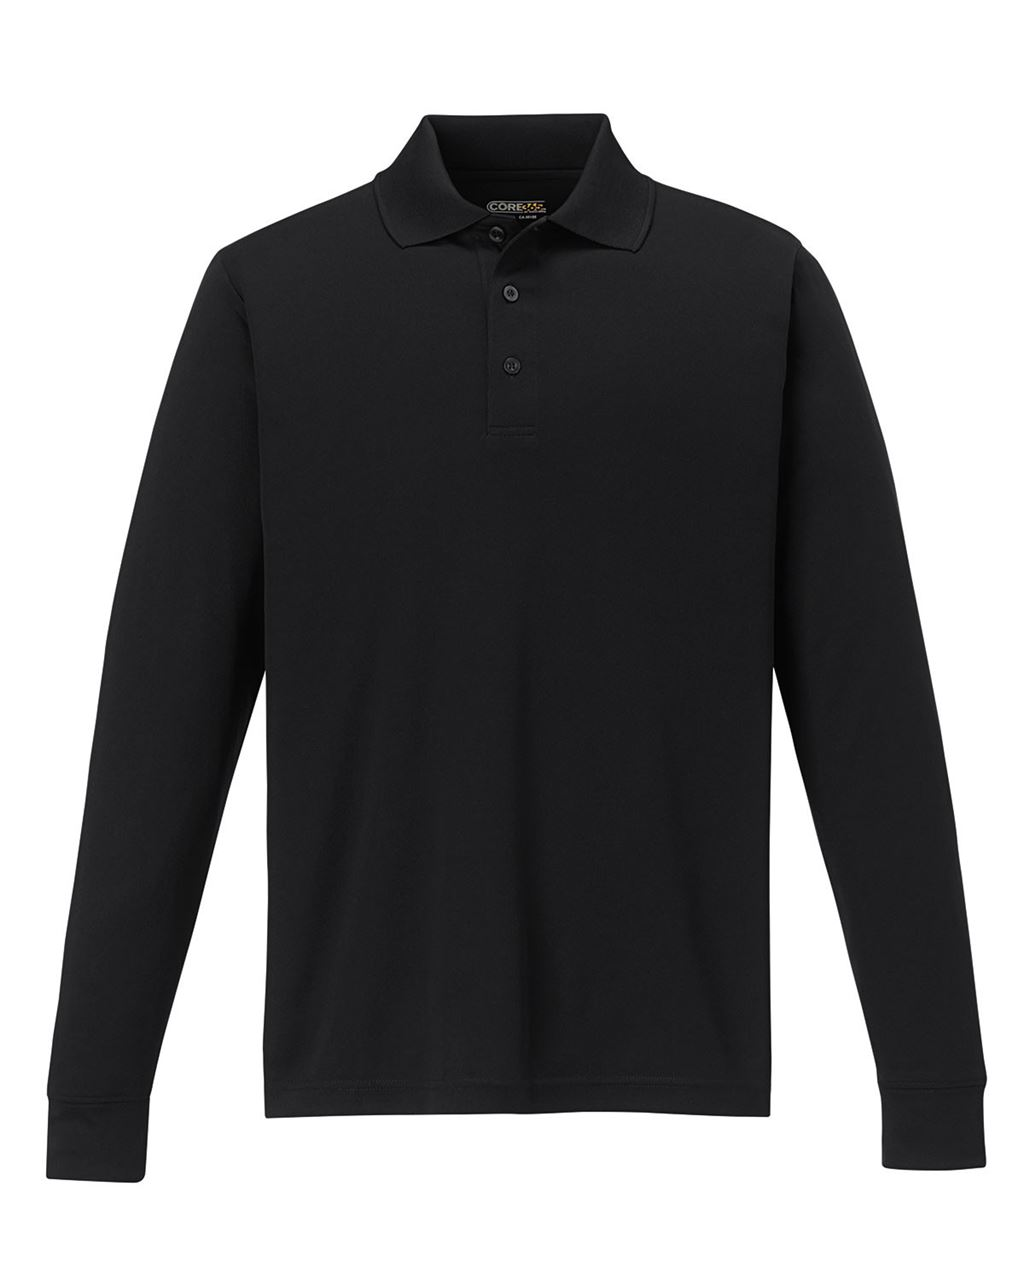 Picture of Core365 Tall Men'S Performance Long Sleeve Polo